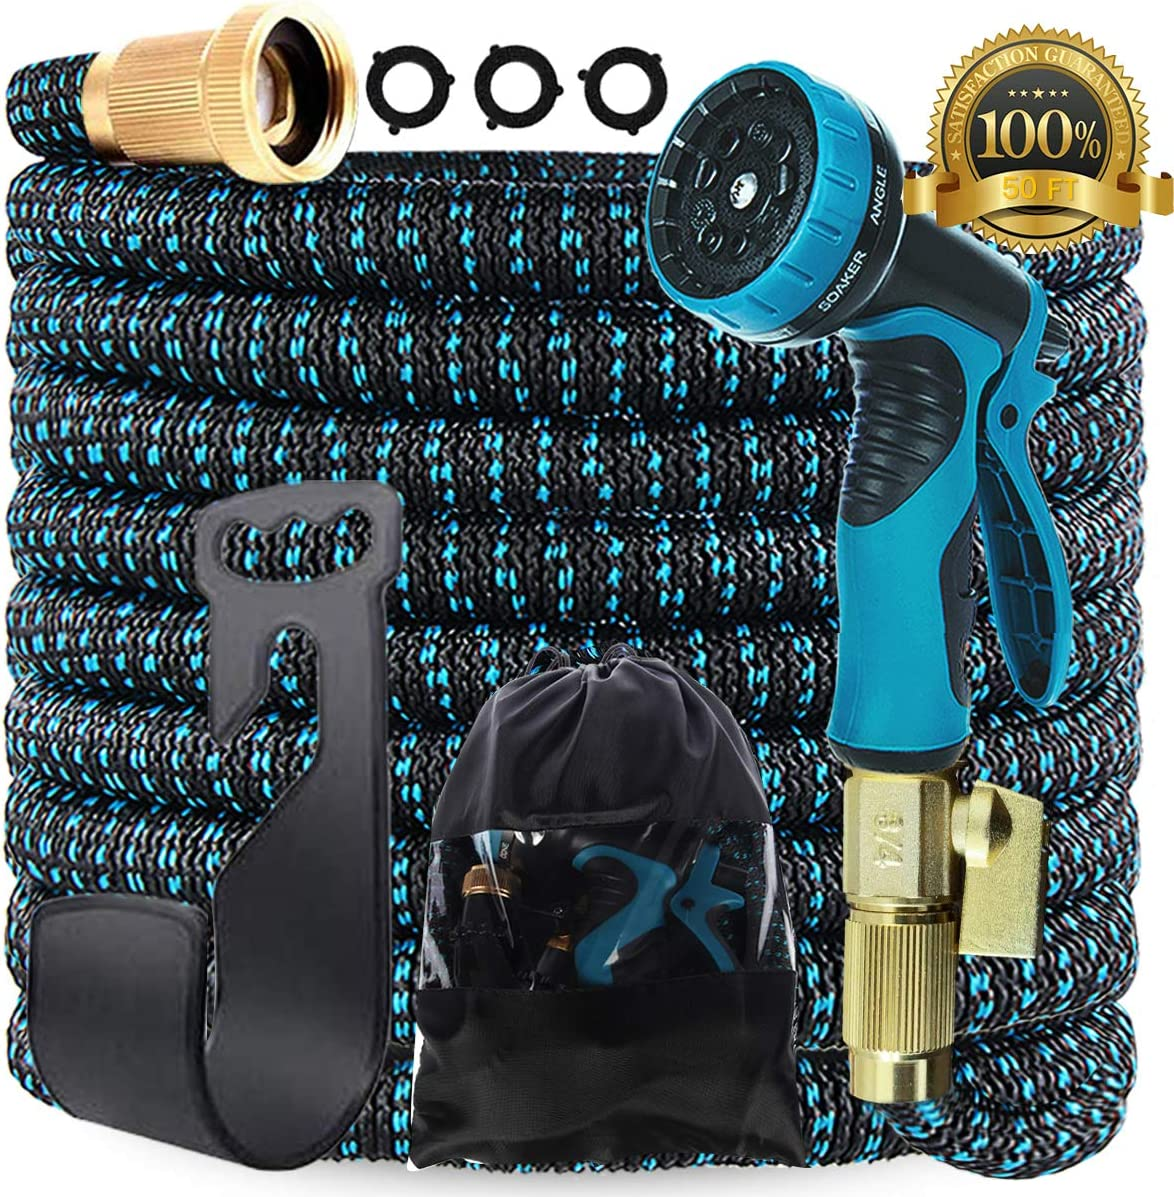 Gardguard 50ft Expandable Garden Hose: Water Hose with 9 Function Nozzle and Durable 3-Layers Latex, Flexible Water Hose with Solid Brass Fittings, Best Choice for Watering and Washing: Home Improvement